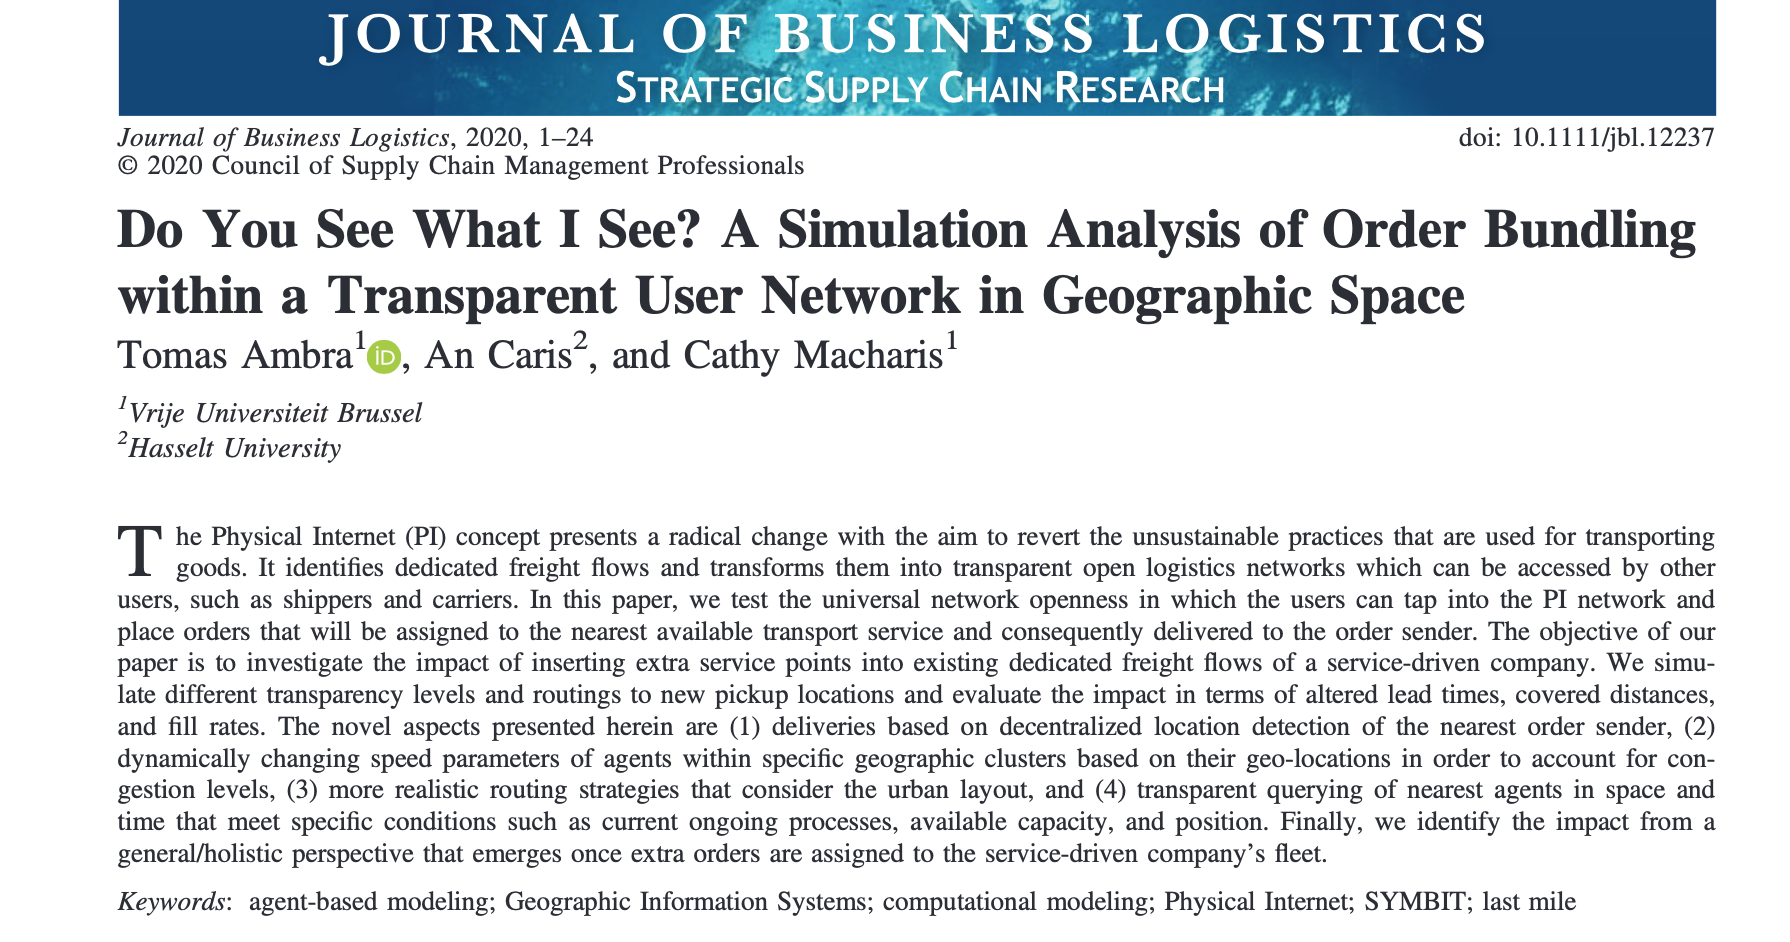 Publication in the Journal of Business Logistics